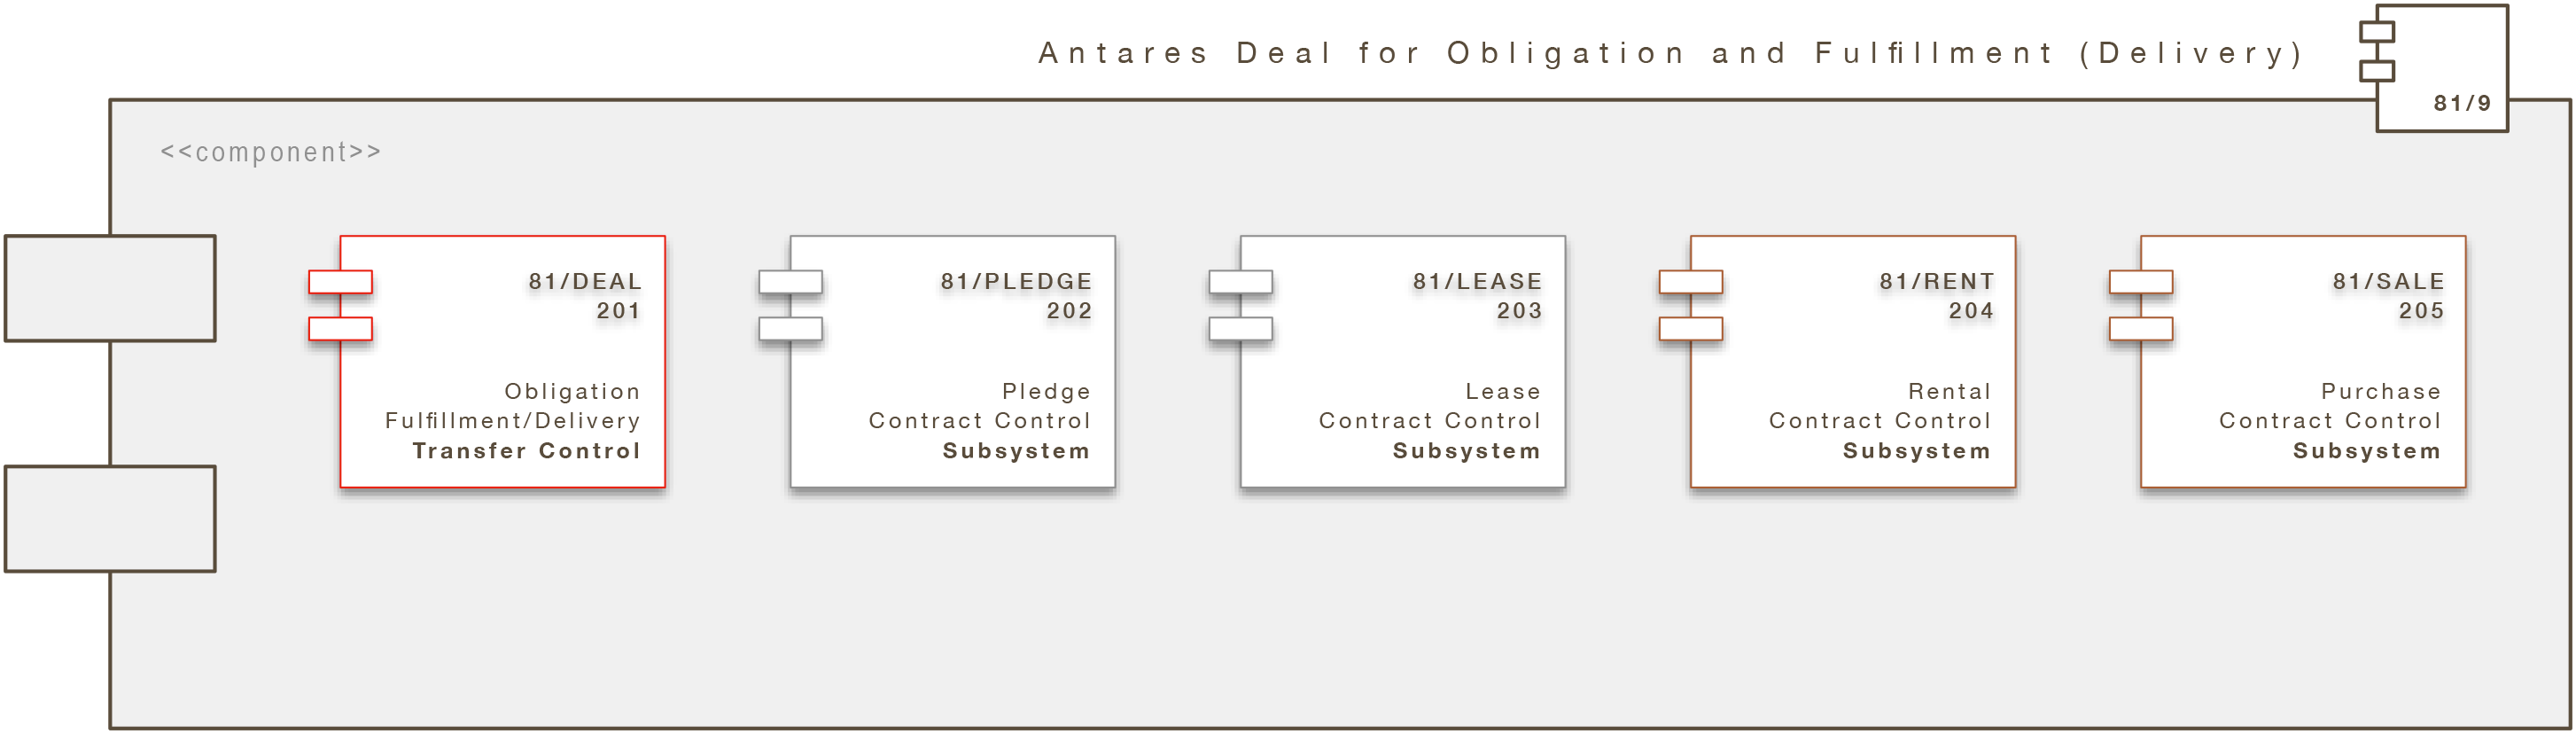 Core Engine Modul: Antares Deal for Obligation and Fulfillment (A/DFO/FFMT)